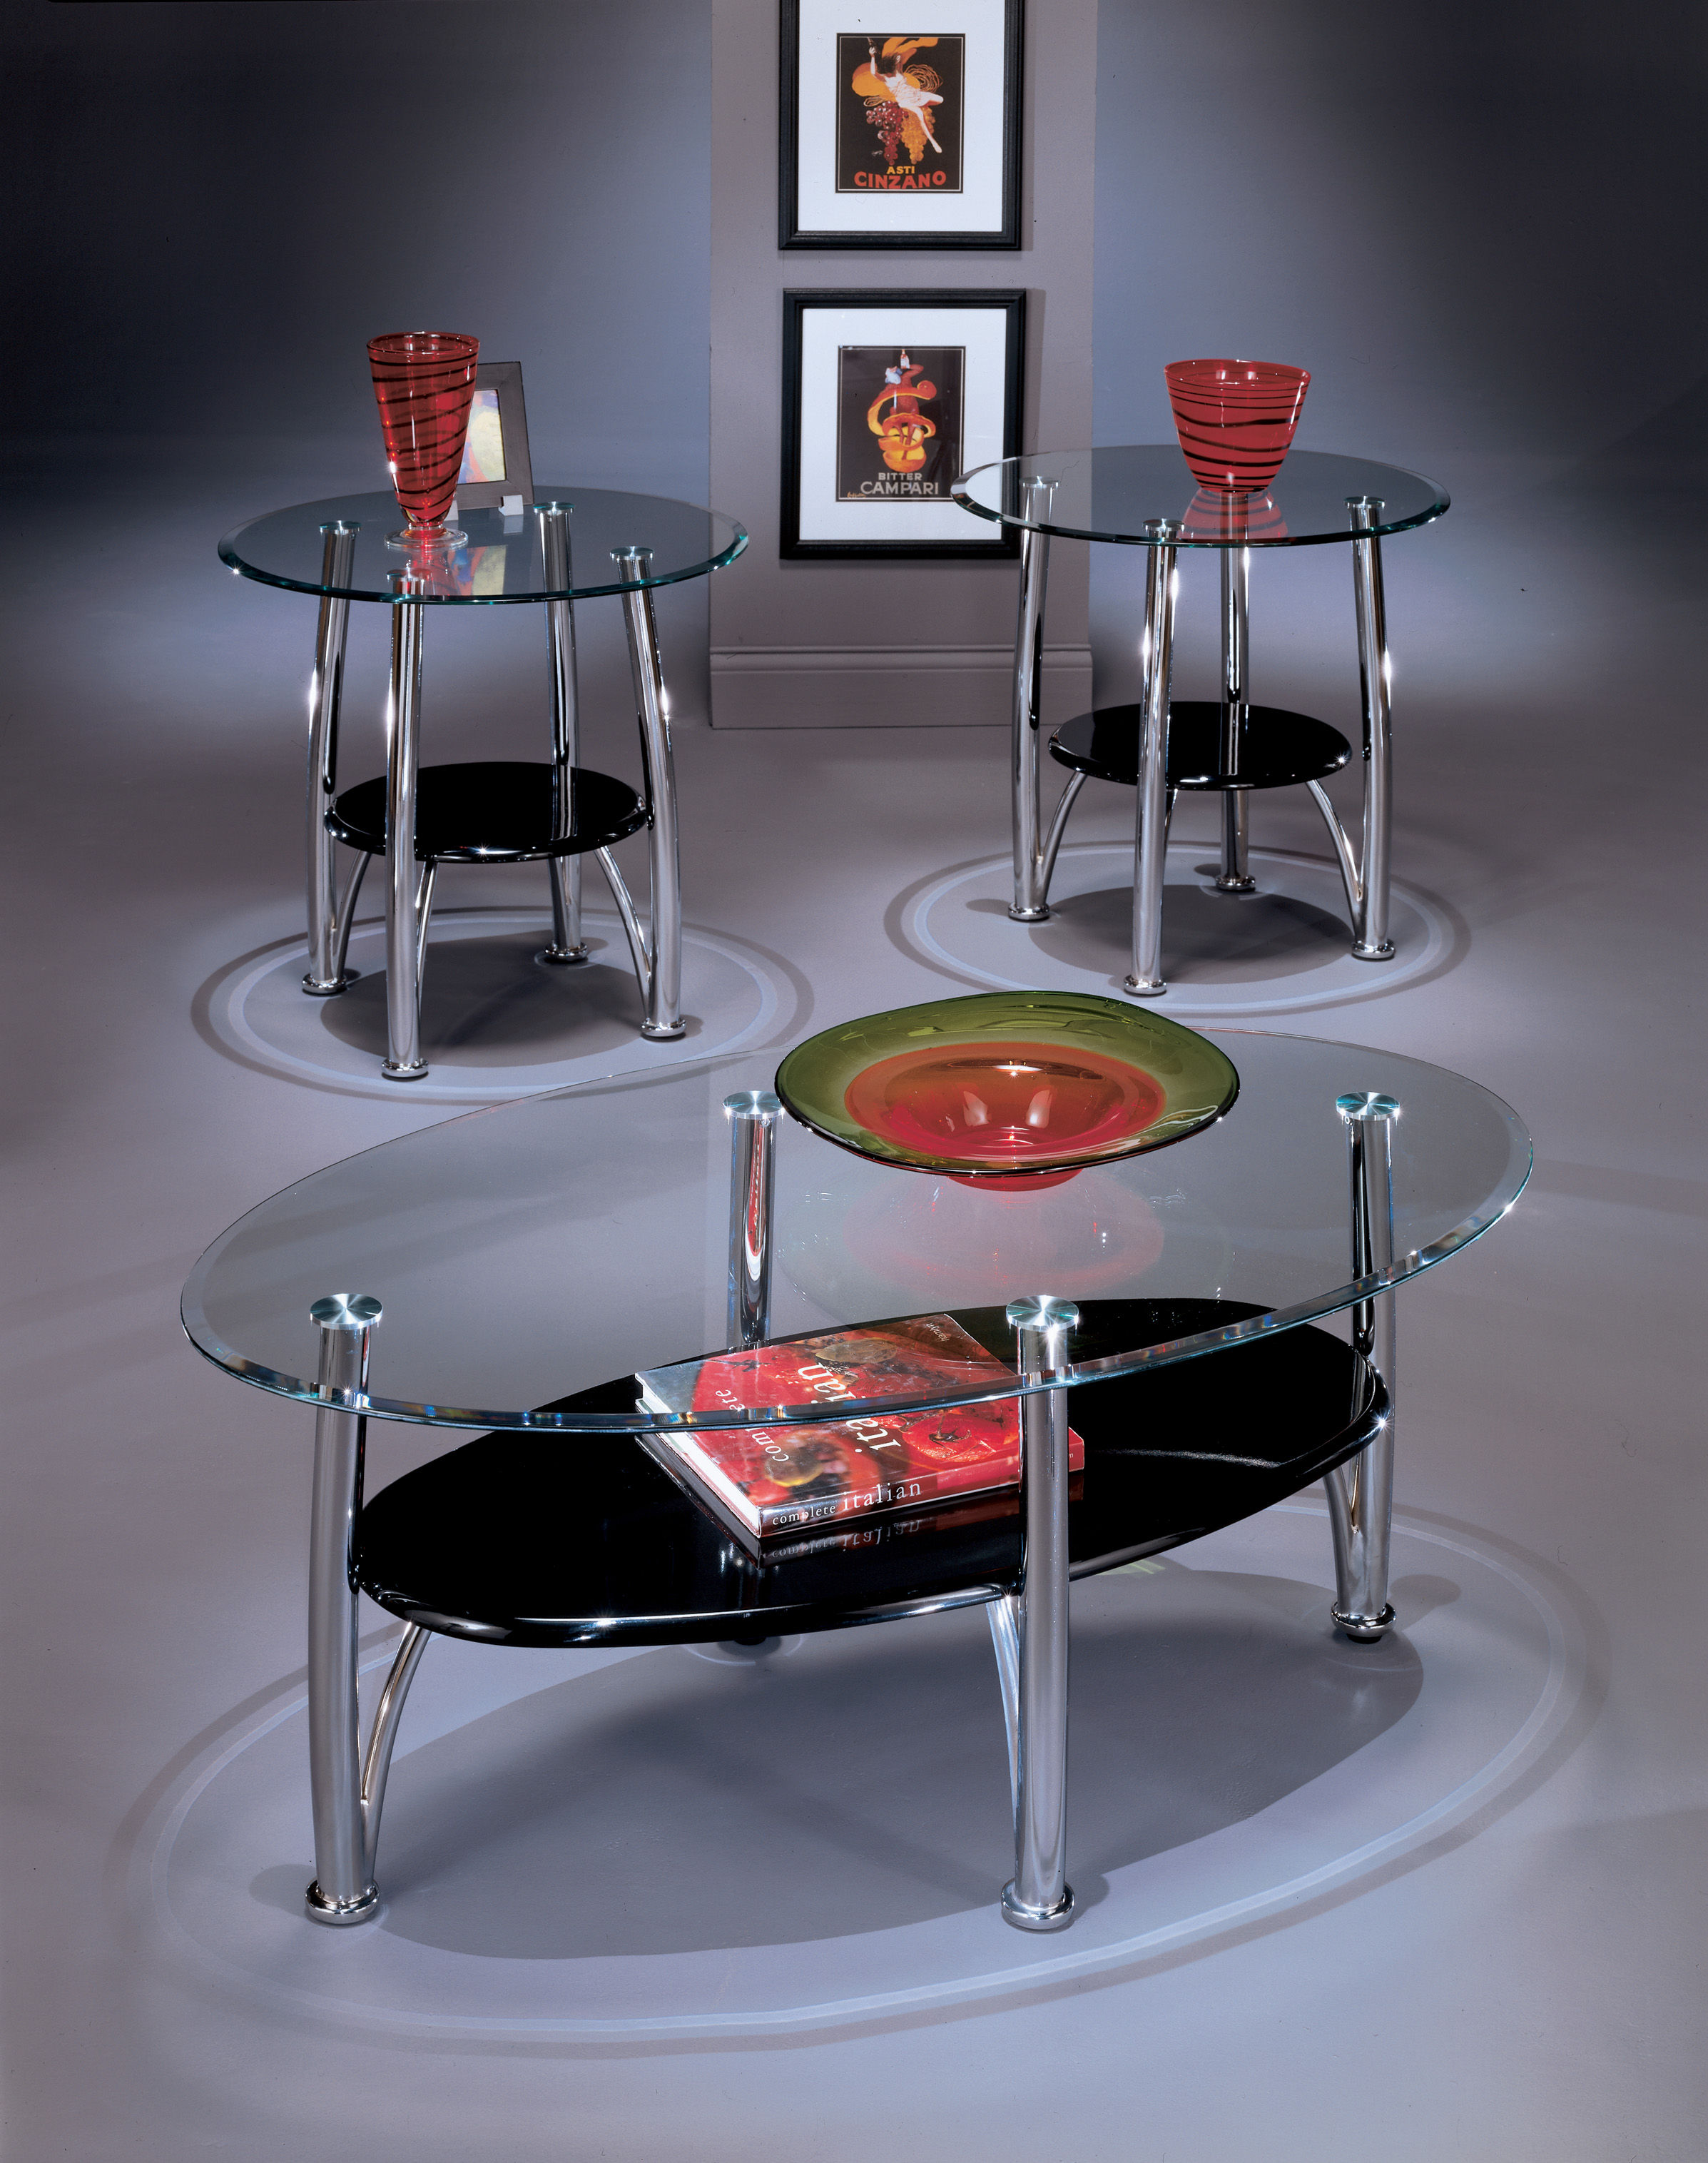 Ashley Furniture Dempsey Black 3pc Coffee Table Set The Classy Home